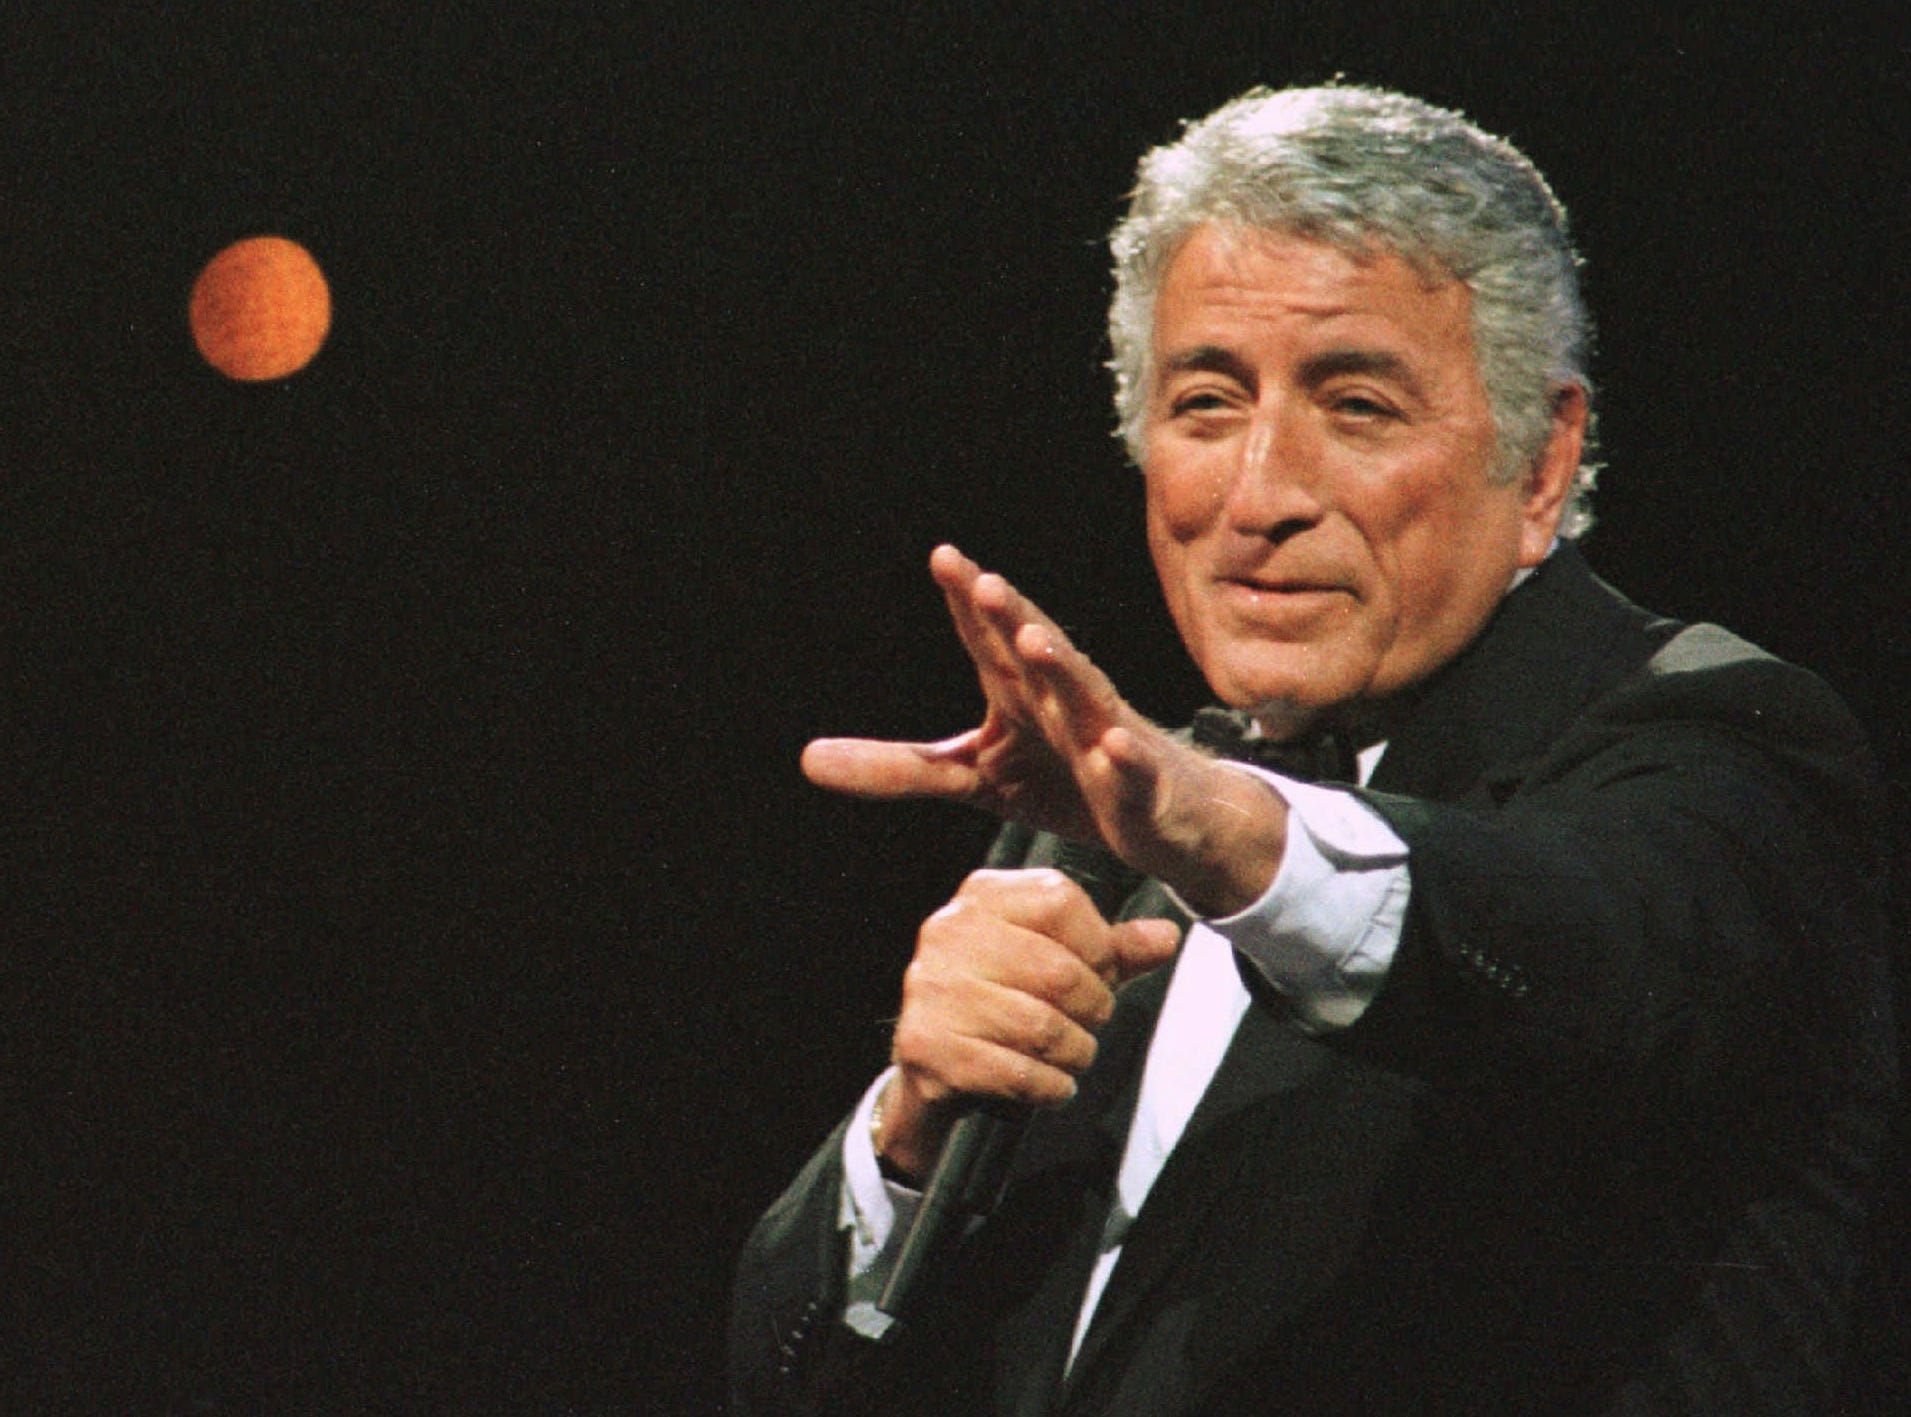 "Tony Bennett gestures during a song in his segment of "" Hear, O Israel""  at the CoreStates center in Philadelphia, Saturday, Jan. 24, 1998. ""Hear, O Israel"" was a concert event with the Israel Philharmonic and Philadelphia orchestras, inaugurating the 50th anniversary of the State of Israel in America. (AP Photo/Tim Shaffer) ORG XMIT: WILX104"